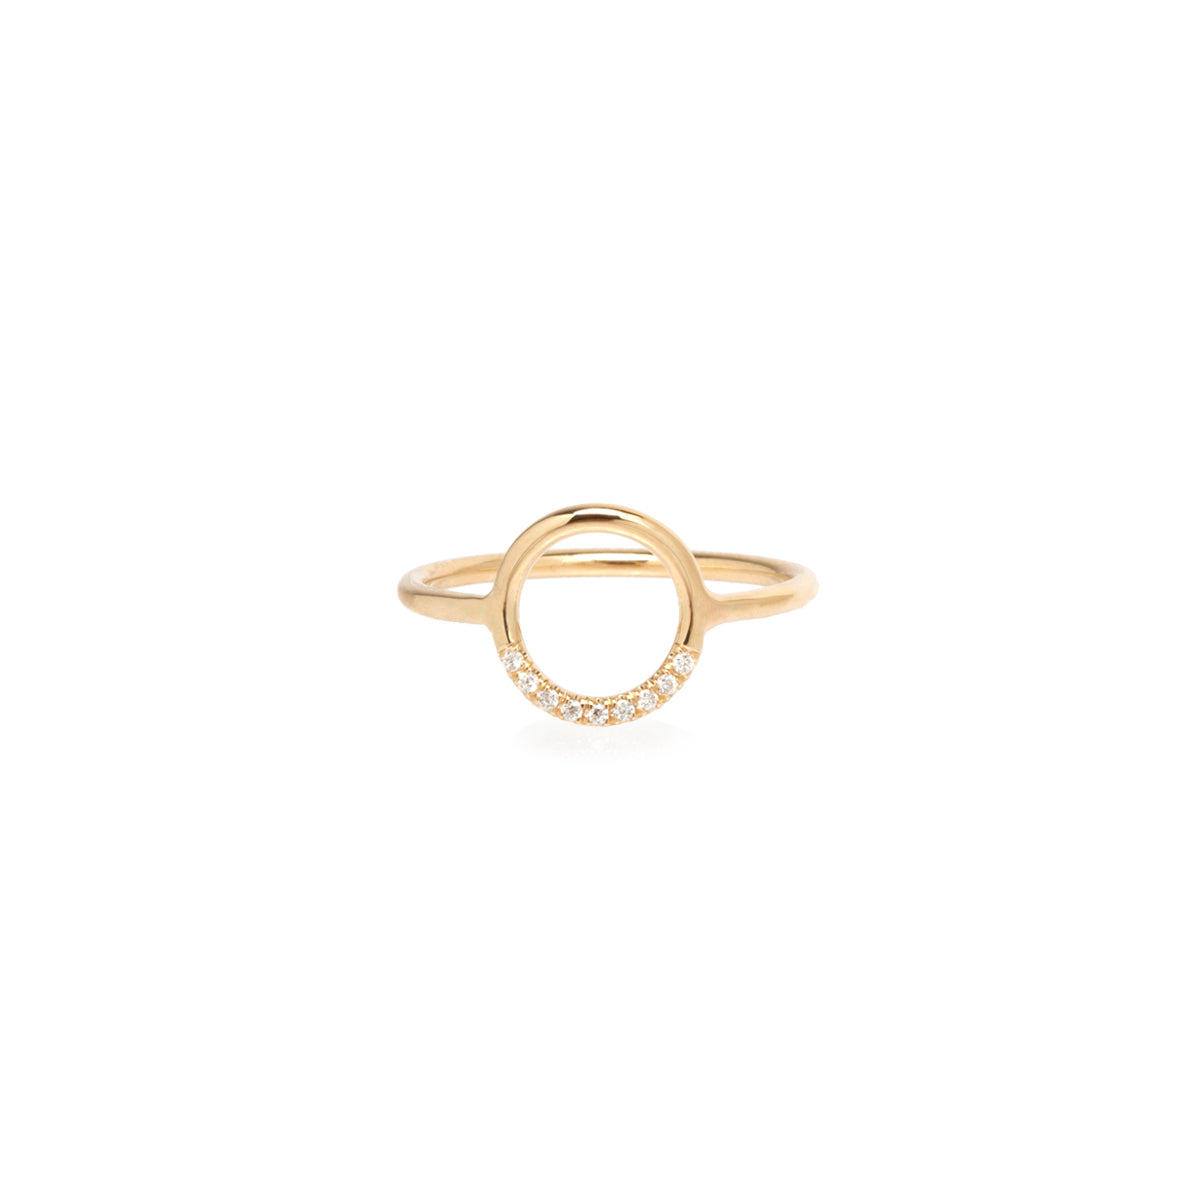 14k small thick circle ring with 10 white pave diamonds